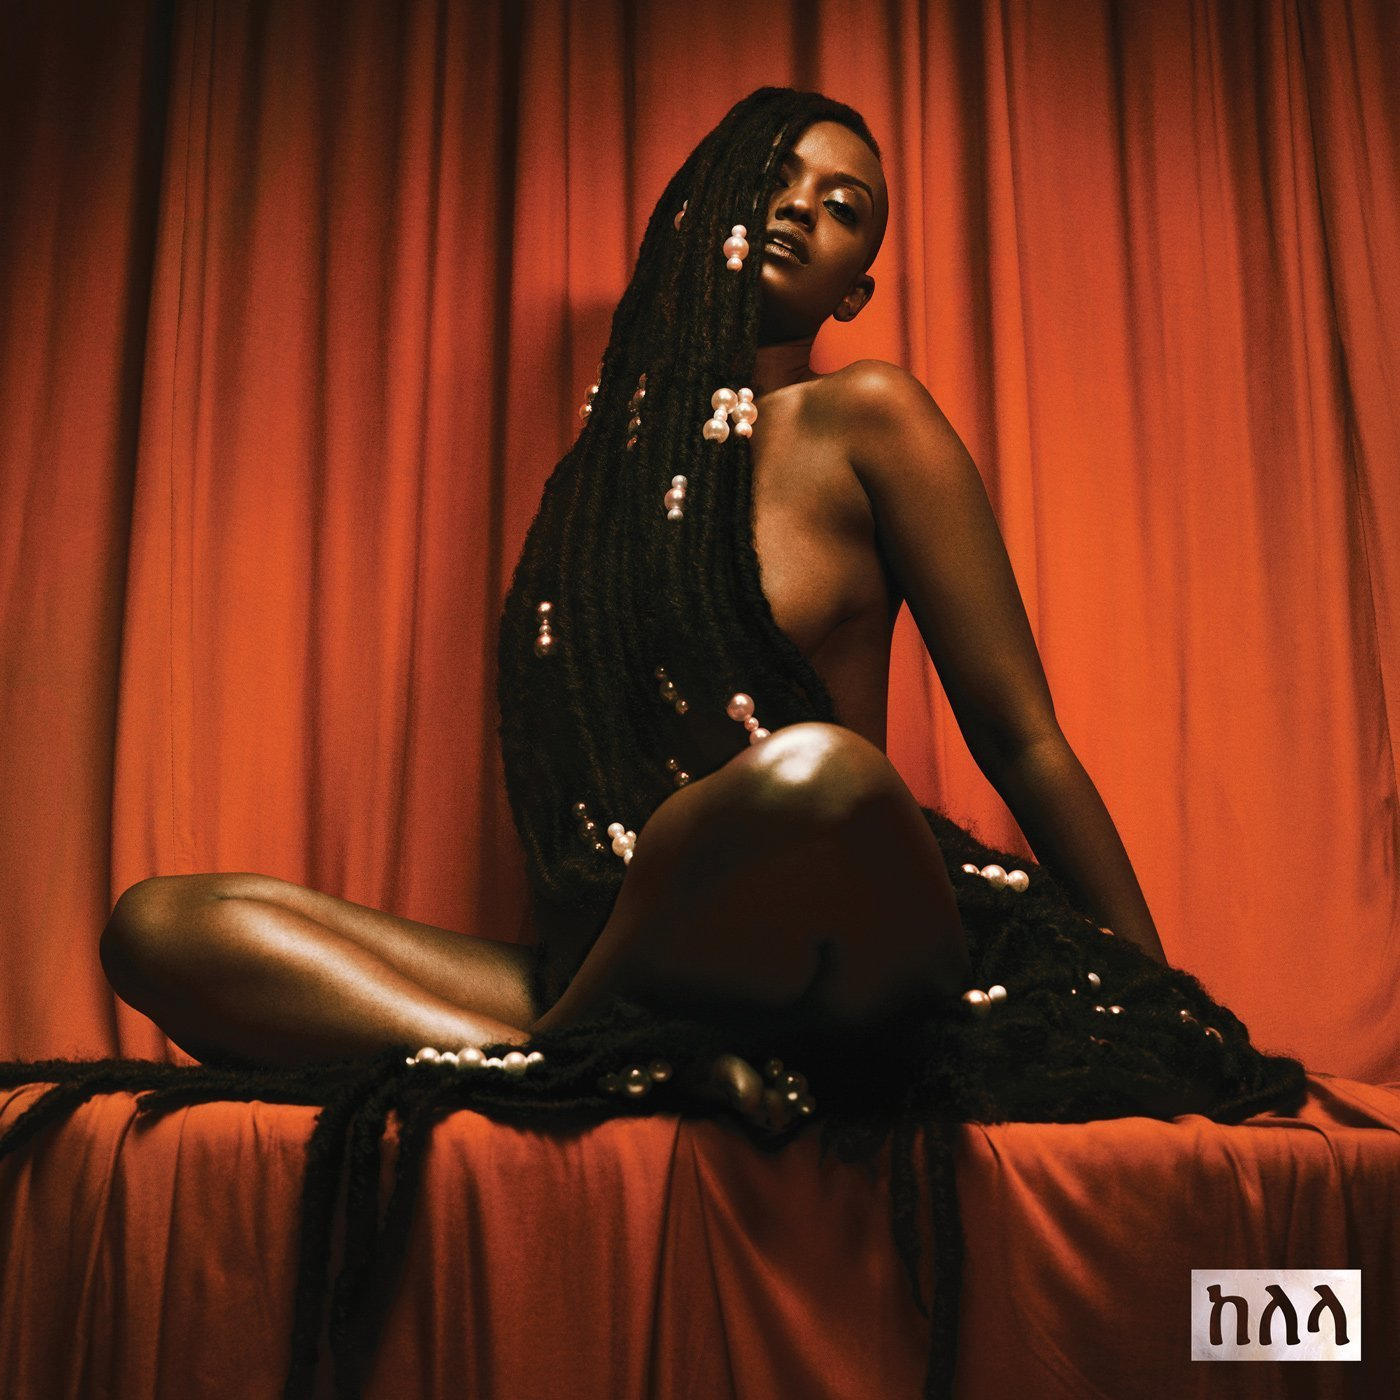 kelela take me apart stream album download Top 50 Albums of 2017